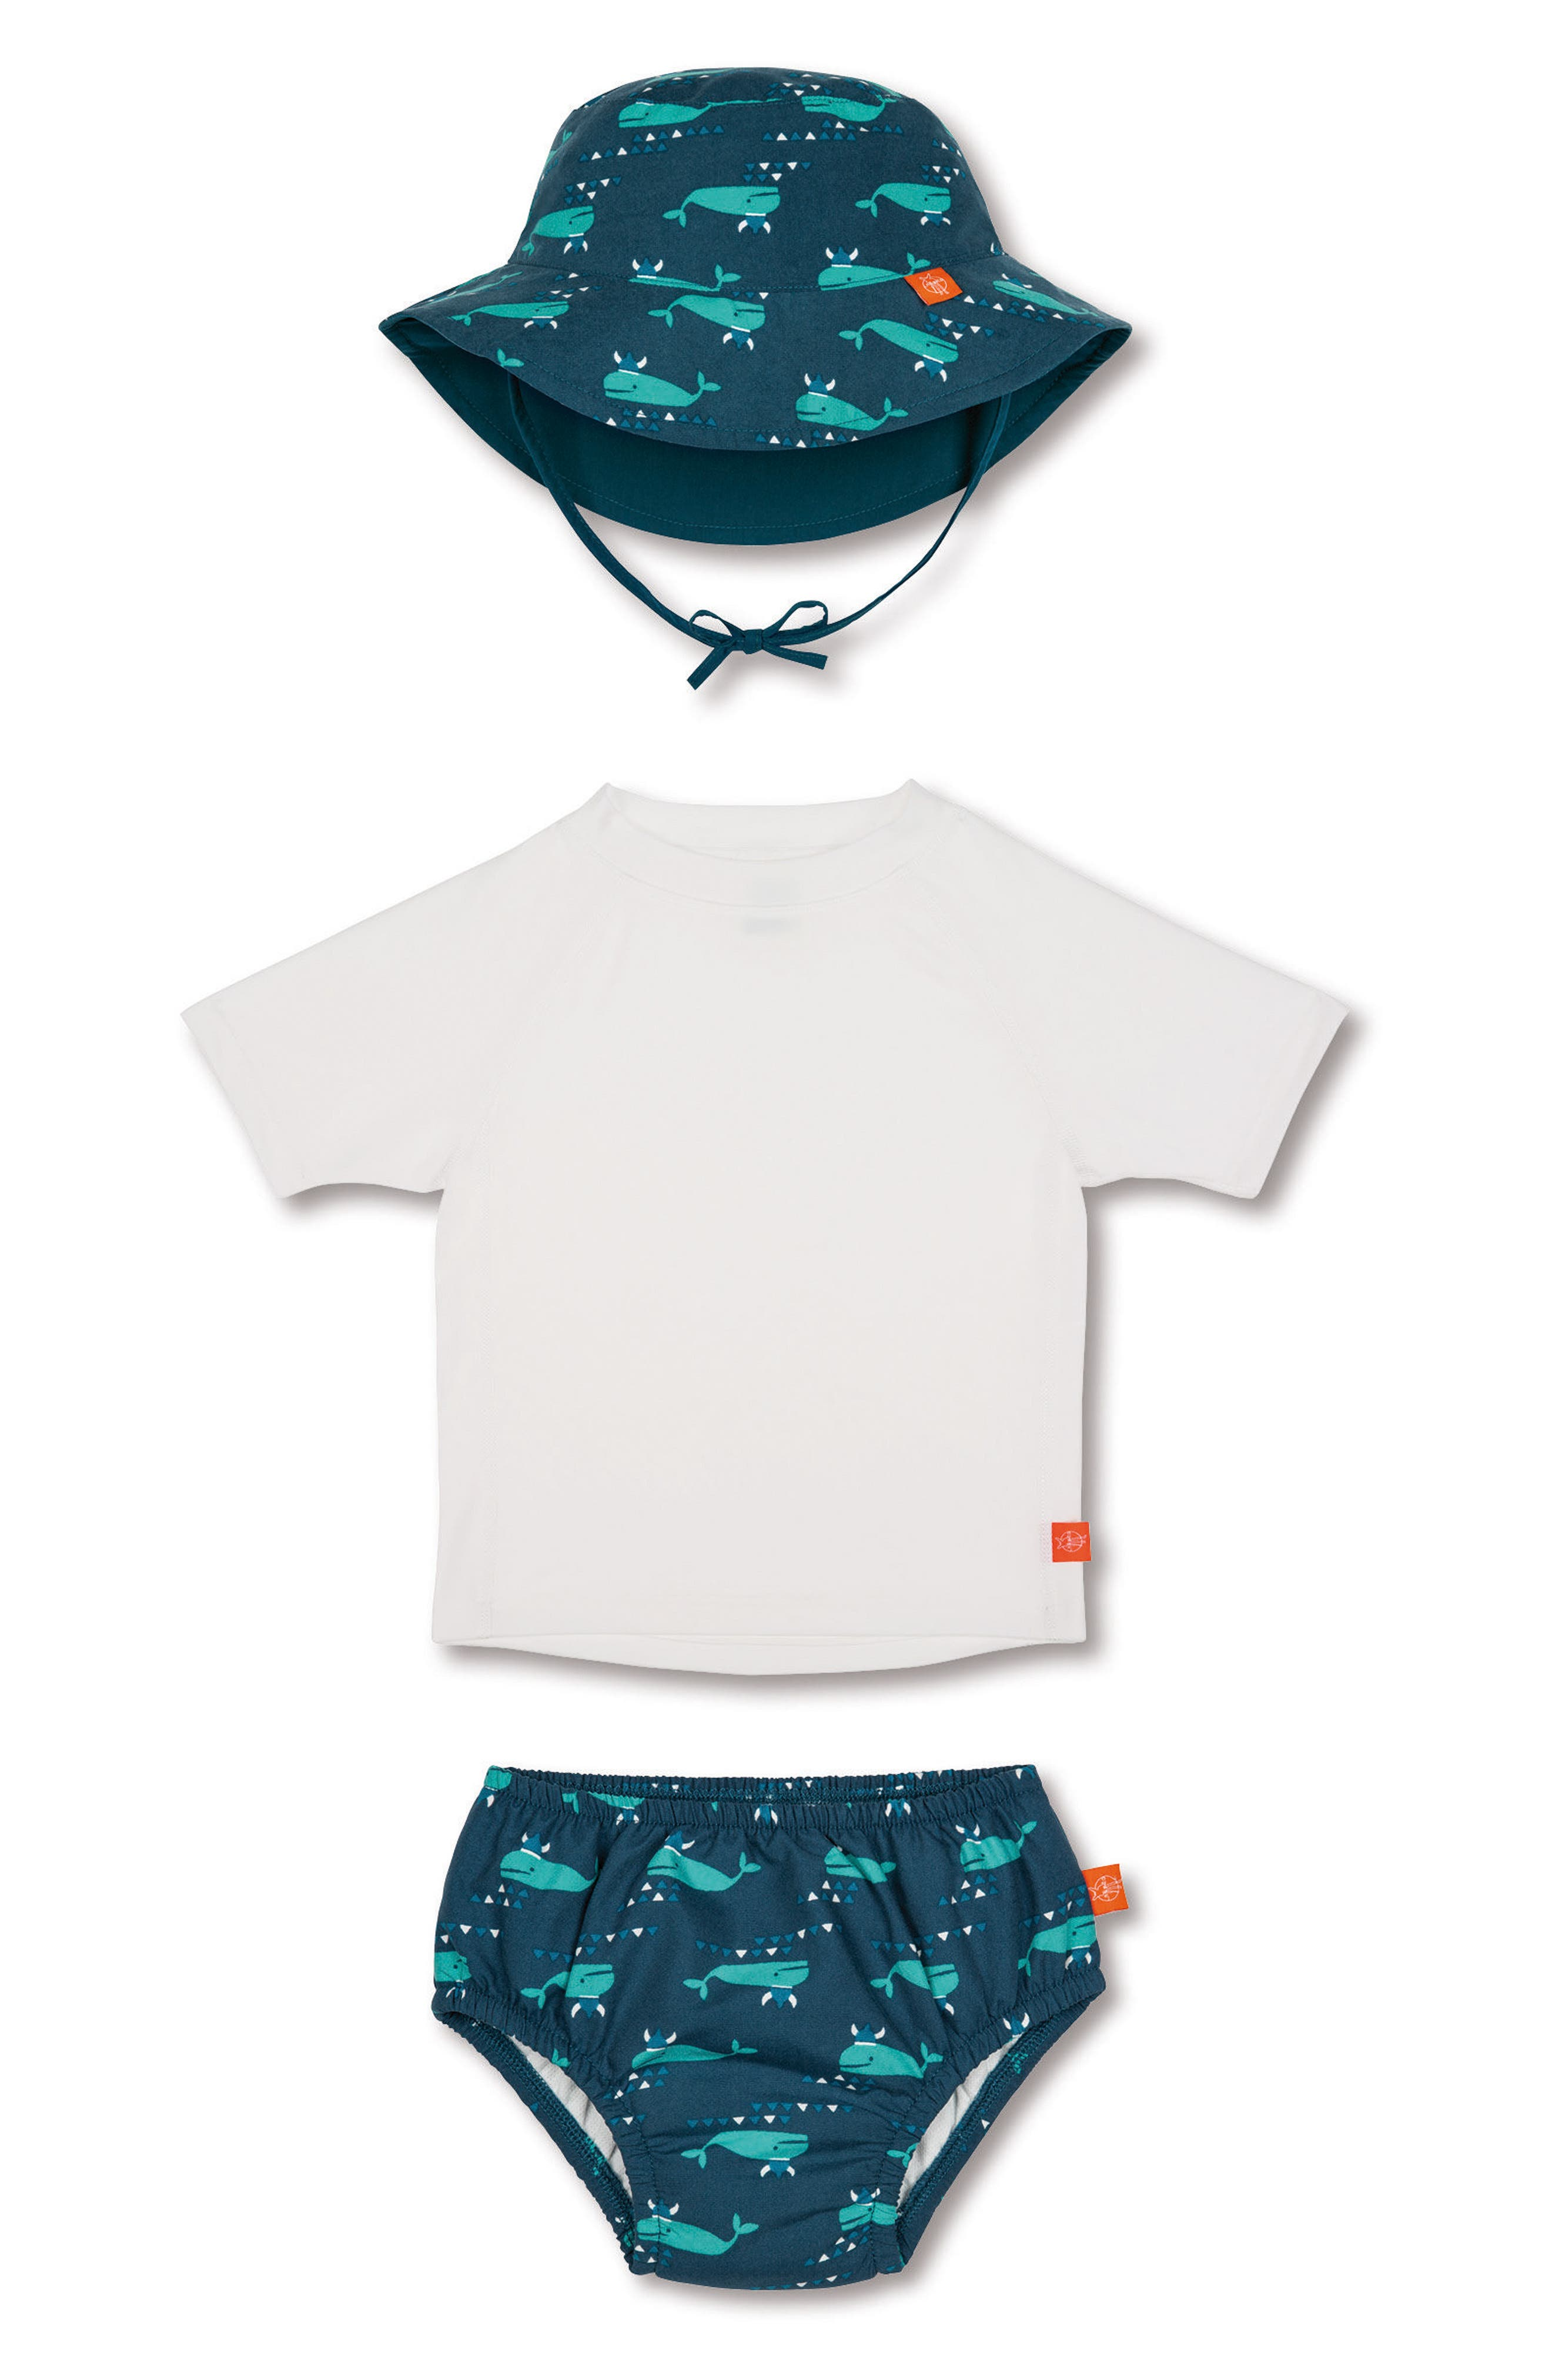 Alternate Image 1 Selected - Lassig Two-Piece Rashguard Swimsuit & Hat Set (Baby & Toddler)